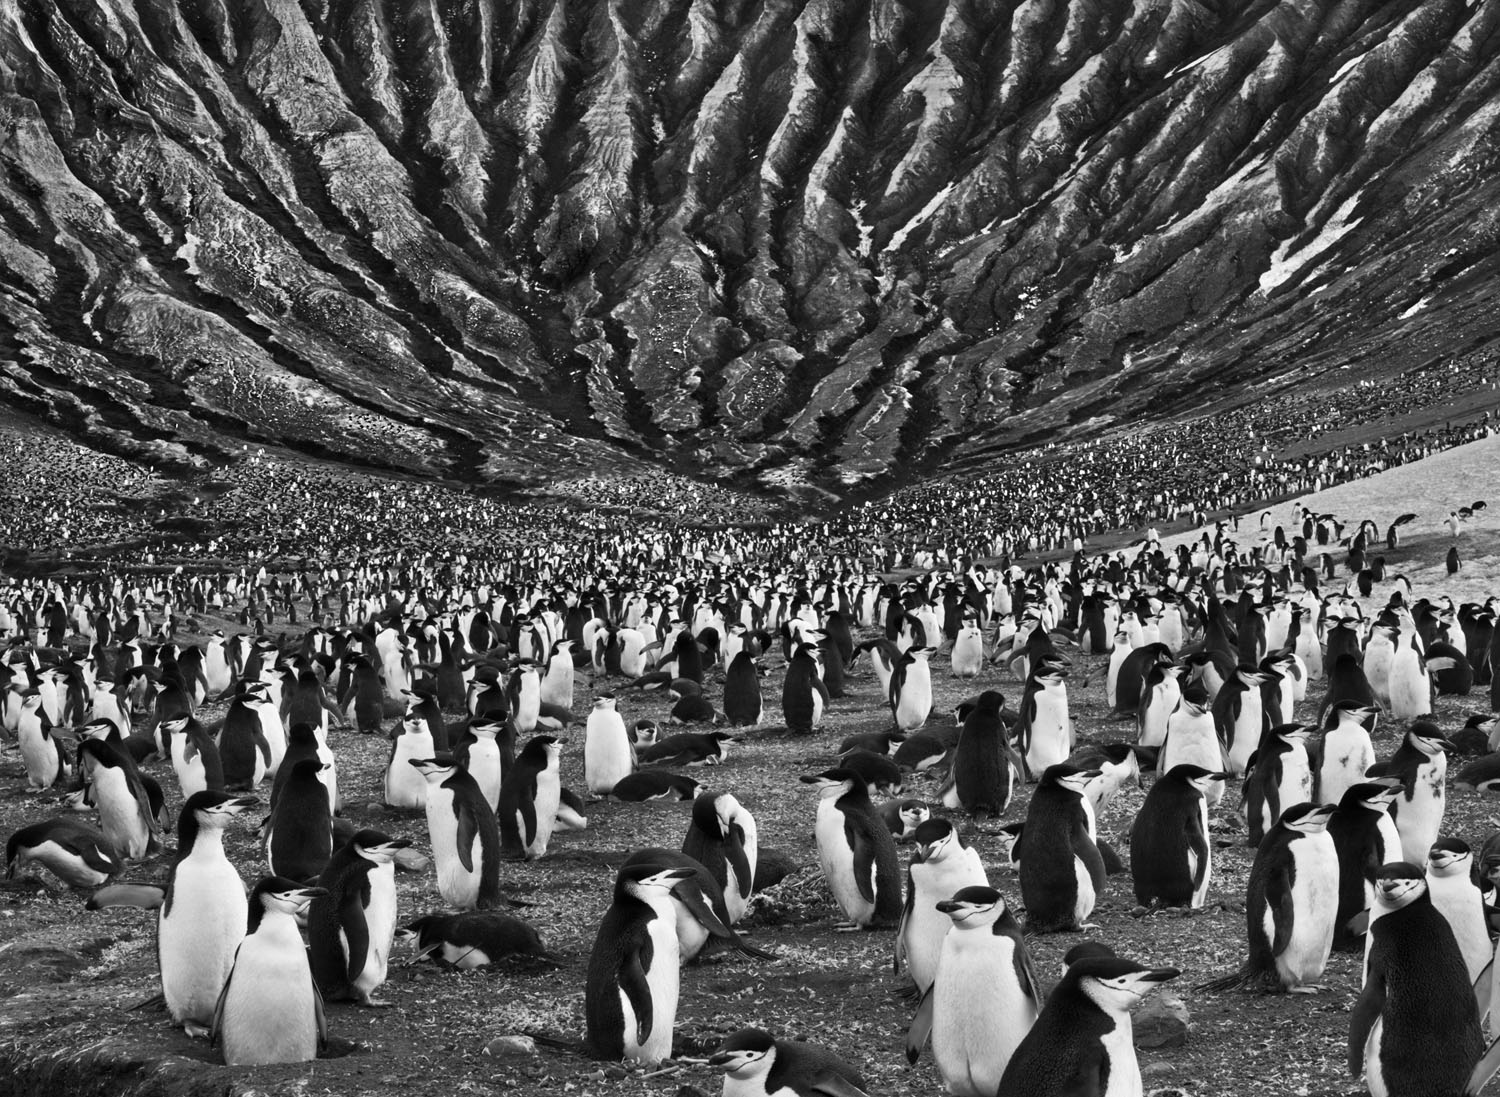 """A colony of chinstrap penguins mills about at the foot of Mount Michael, an active volcano in the South Sandwich Islands, in the far South Atlantic, where erosion has cut the volcanic ash into eerie crevices. """"These landscapes are as alive as I am,"""" says Salgado. """"One day I was walking around rocks near a volcano that were one day old. They had justbecome solid."""